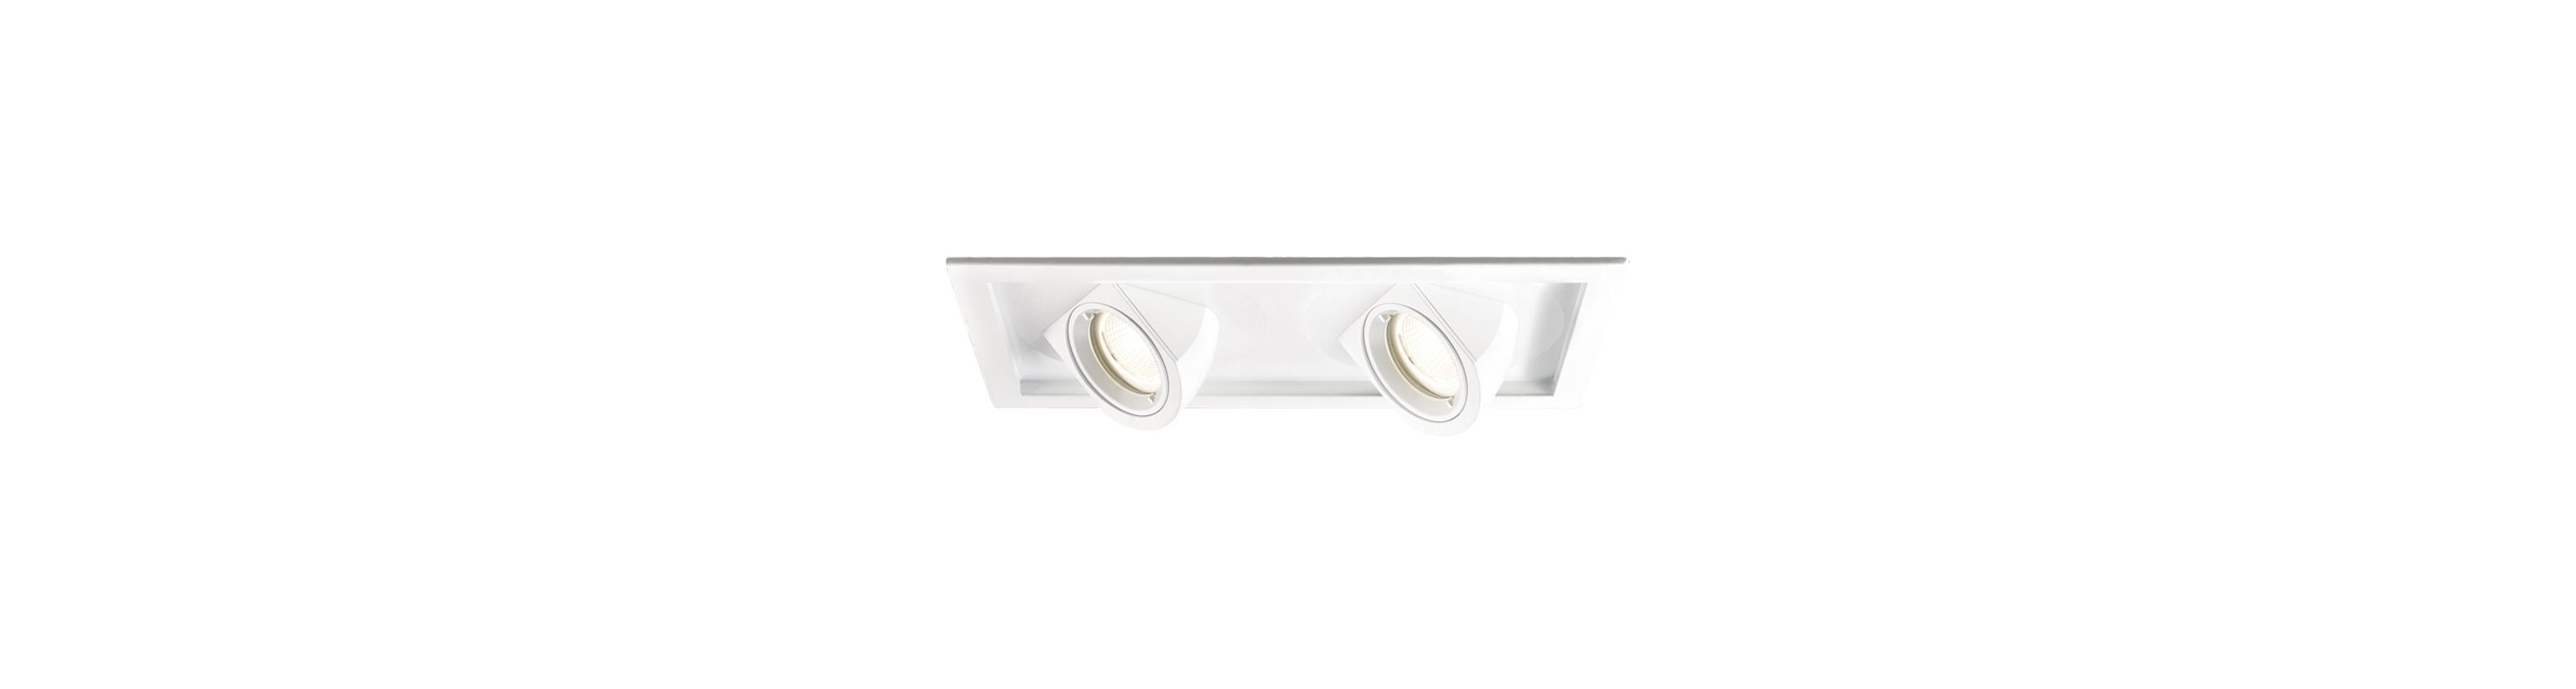 WAC Lighting MT-5LD225H Multiple Spot LED Recessed Light Housing for Sale $261.00 ITEM#: 2426879 MODEL# :MT-5LD225H-NA UPC#: 790576279282 :